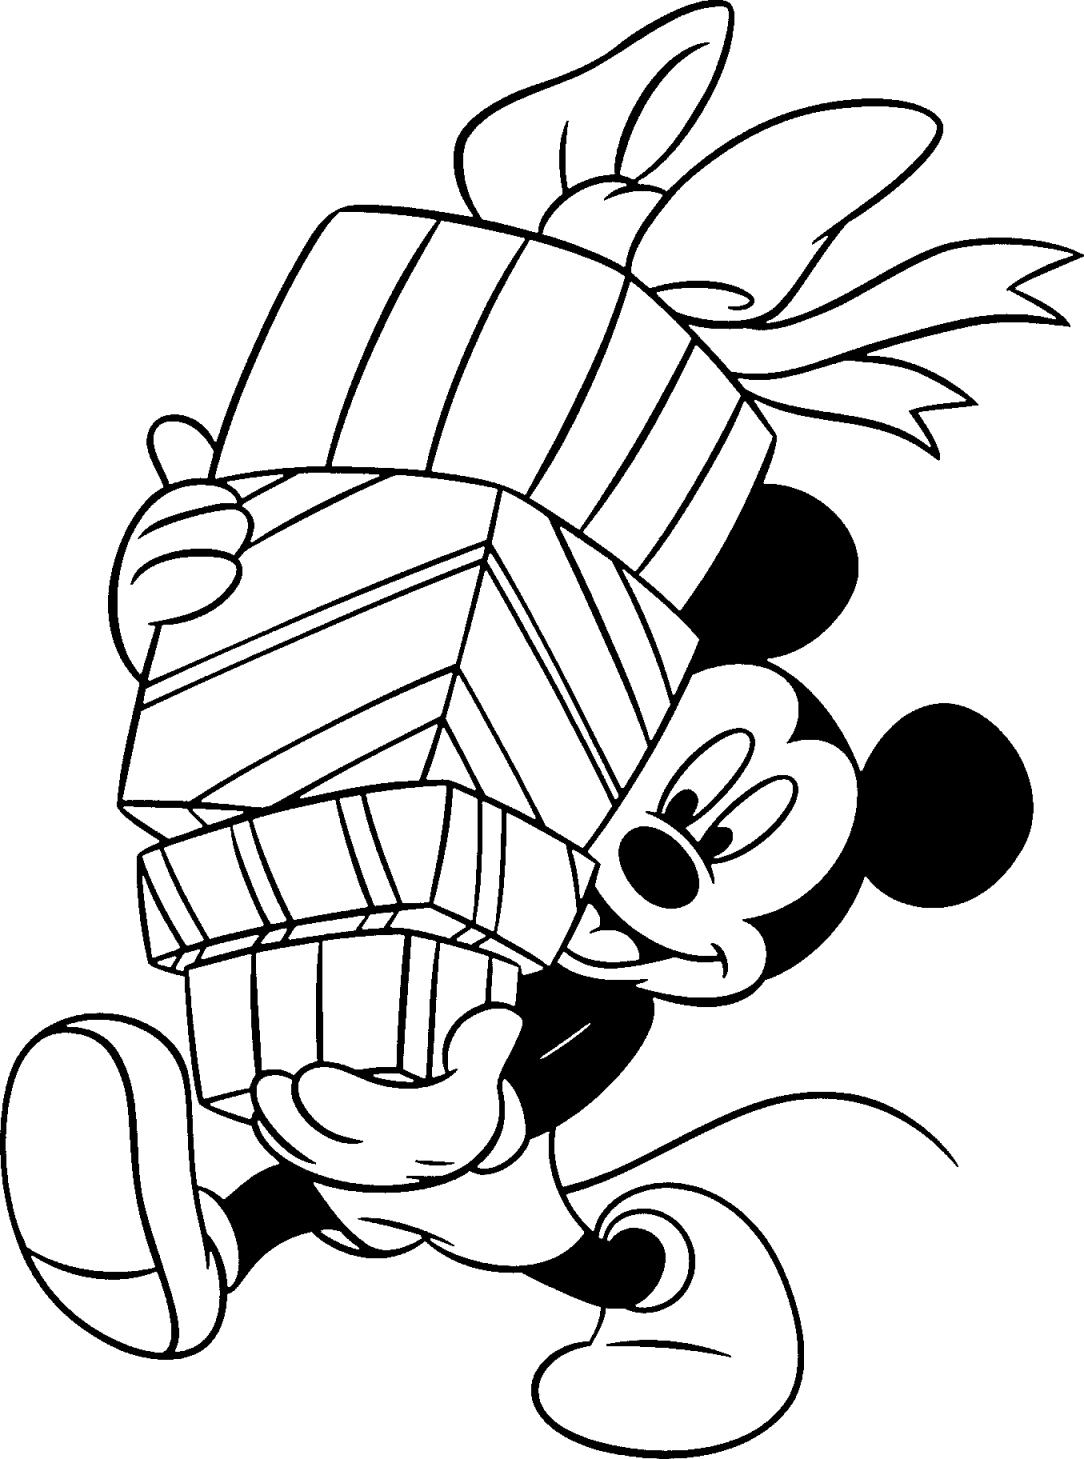 Birthday mickey mouse coloring pages pinterest birthday for Mickey mouse coloring pages free printable